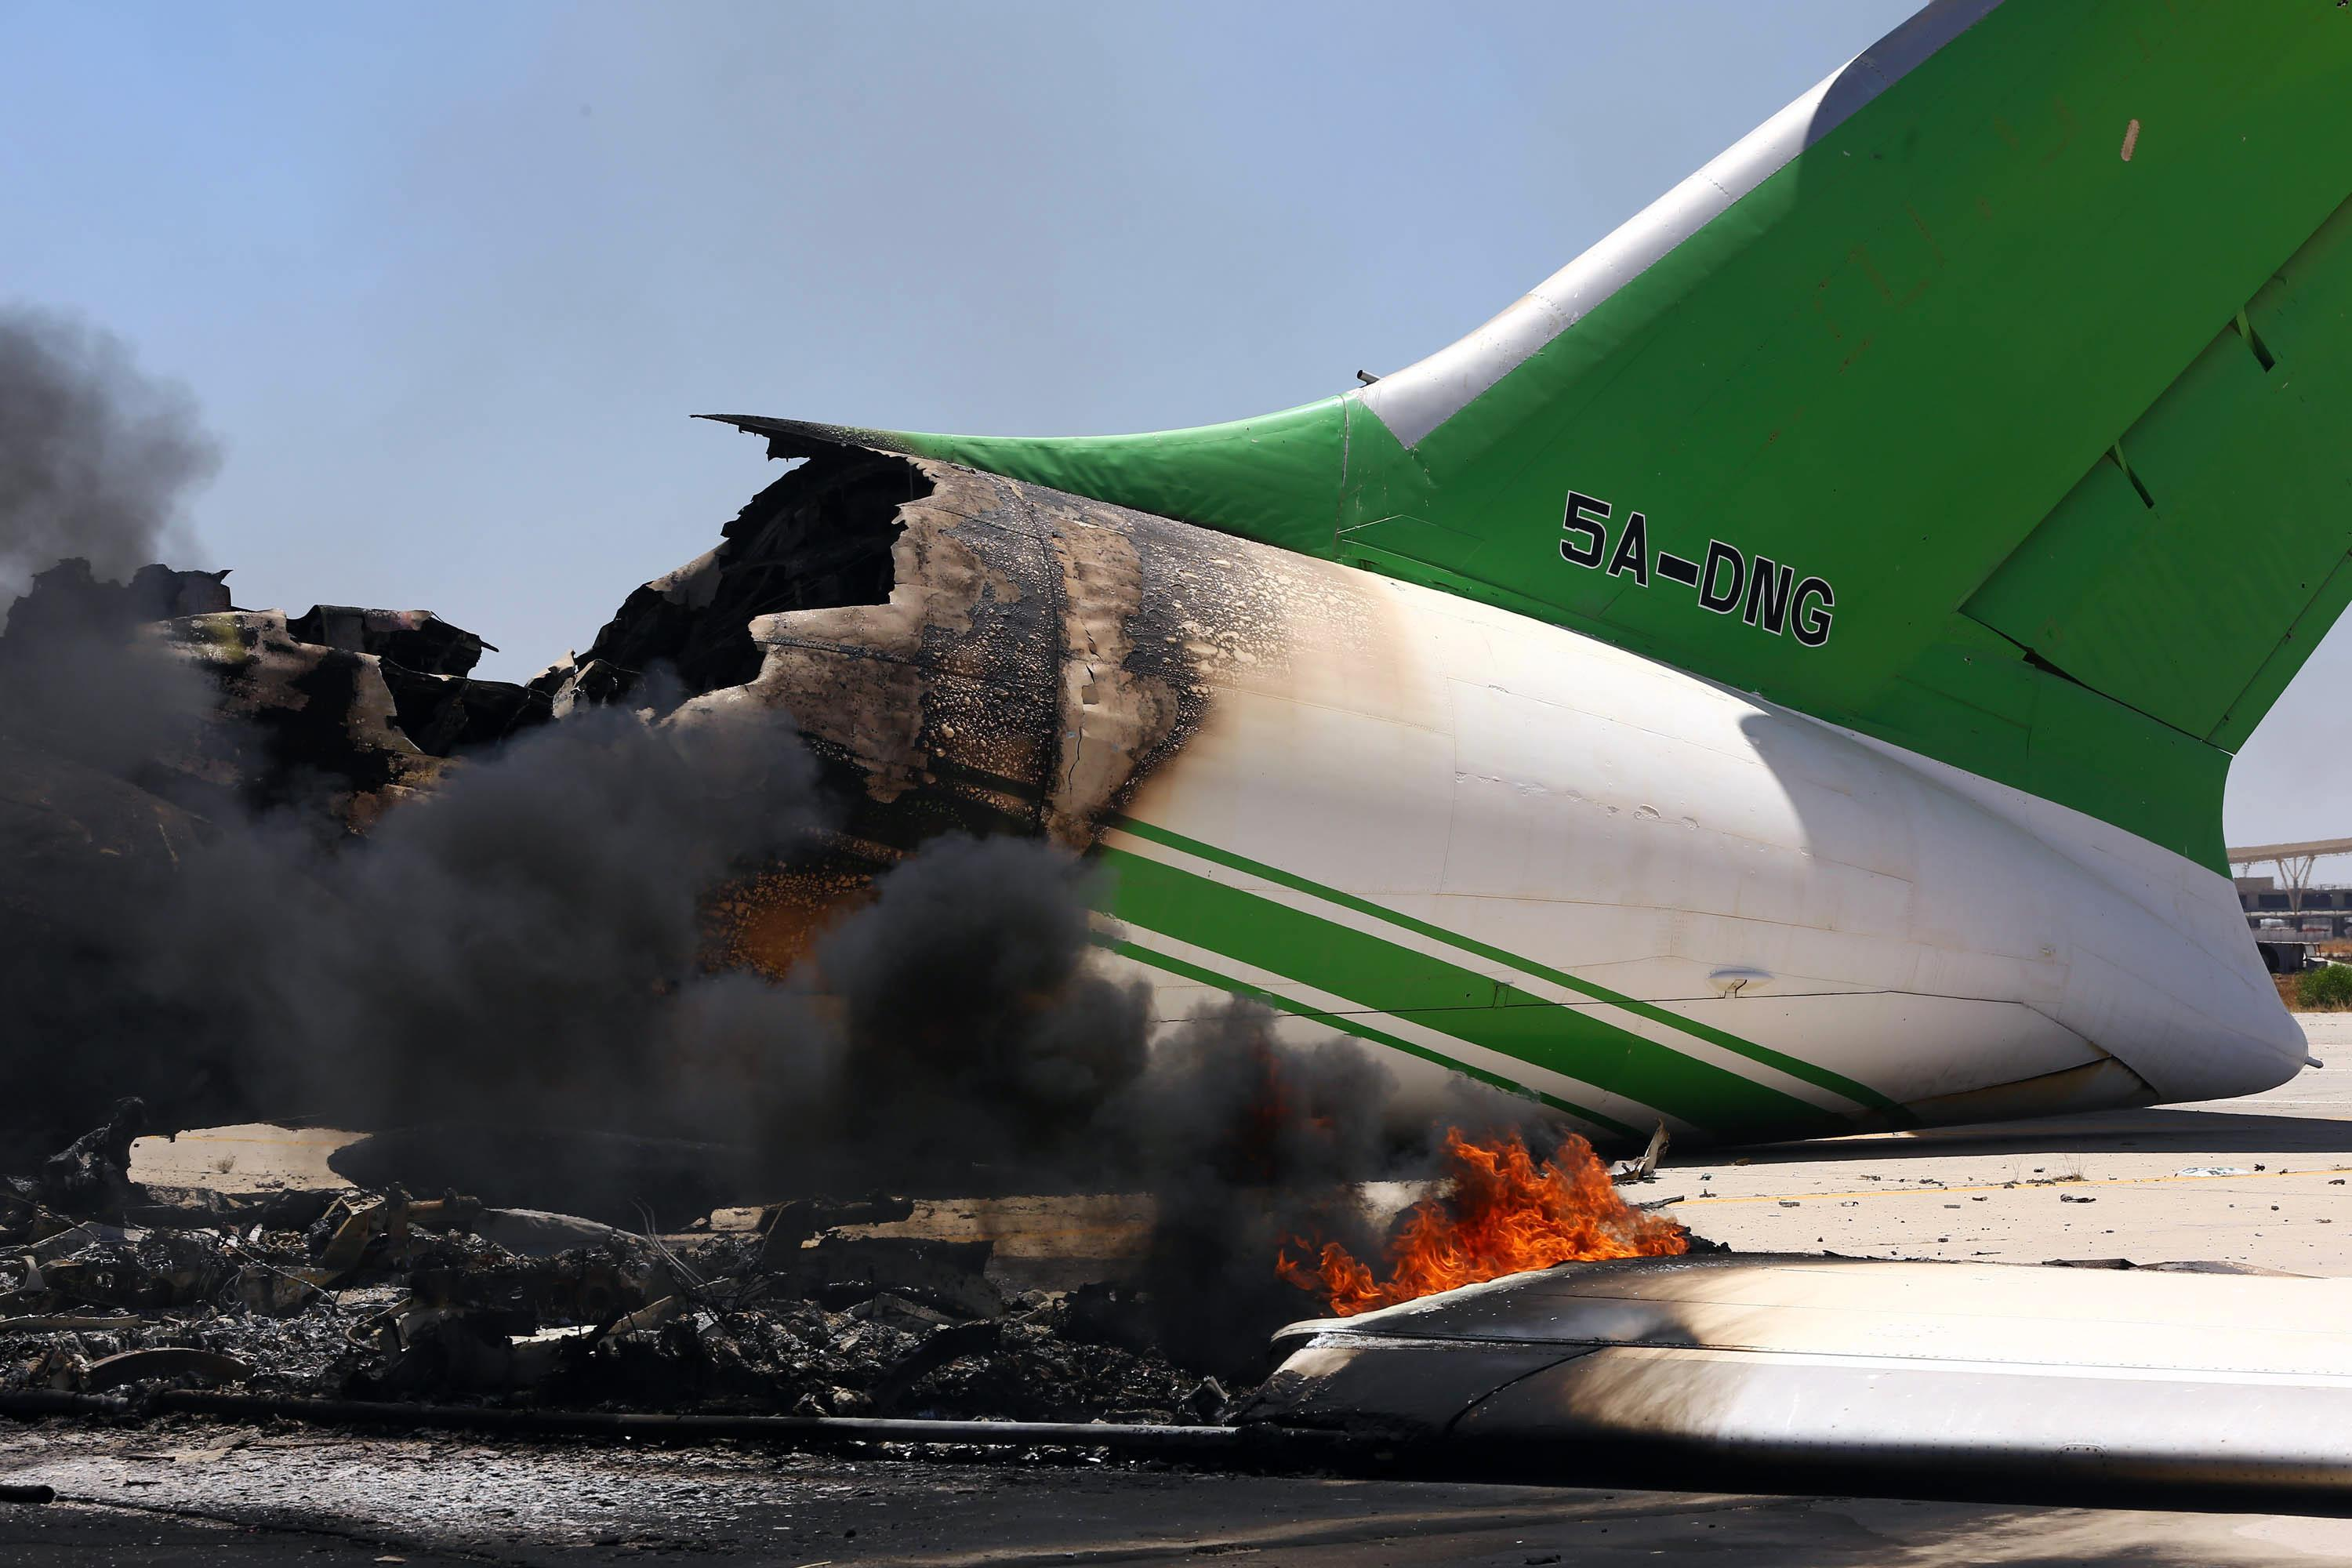 Flames and smoke billow from a plane that was destroyed during fierce clashes at Tripoli's international airport in the Libyan capital, on July 16, 2014 (AFP Photo/Mahmud Turkia)